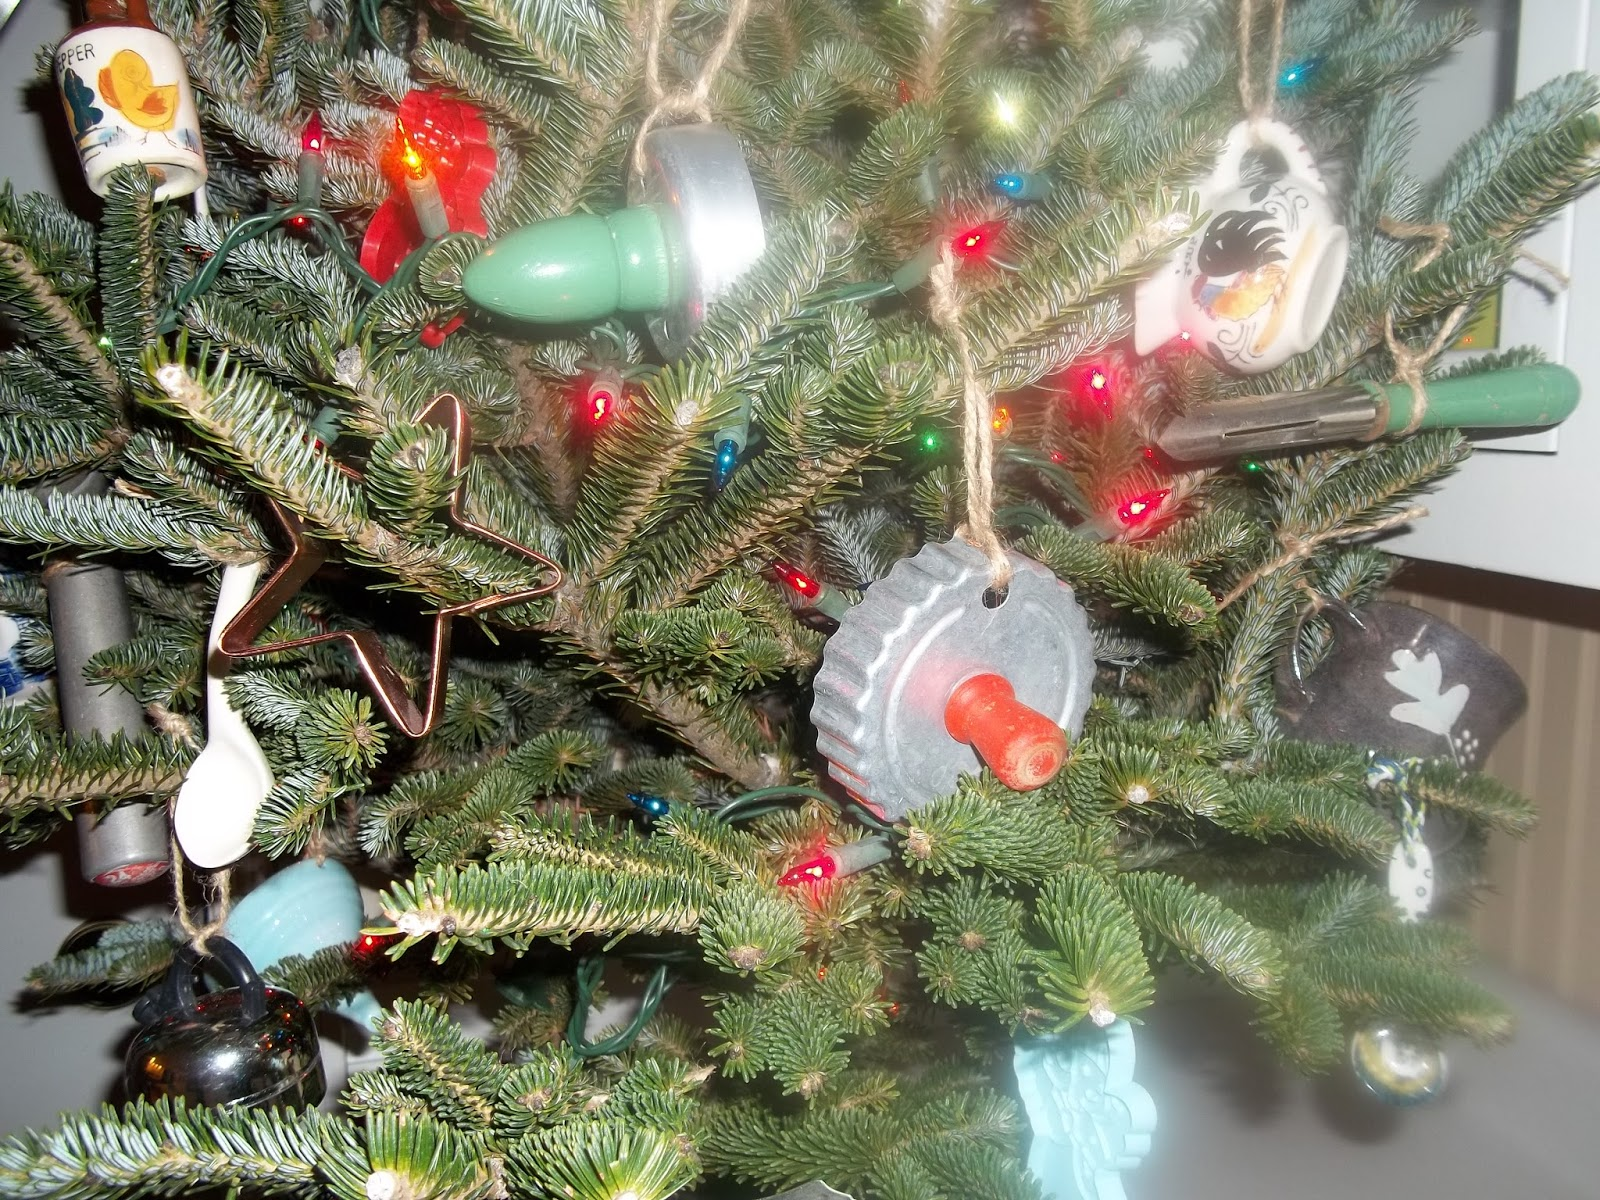 Kitchen Christmas Tree From The Heartcheryl Stjohn Great Christmas Tree Tour 2016